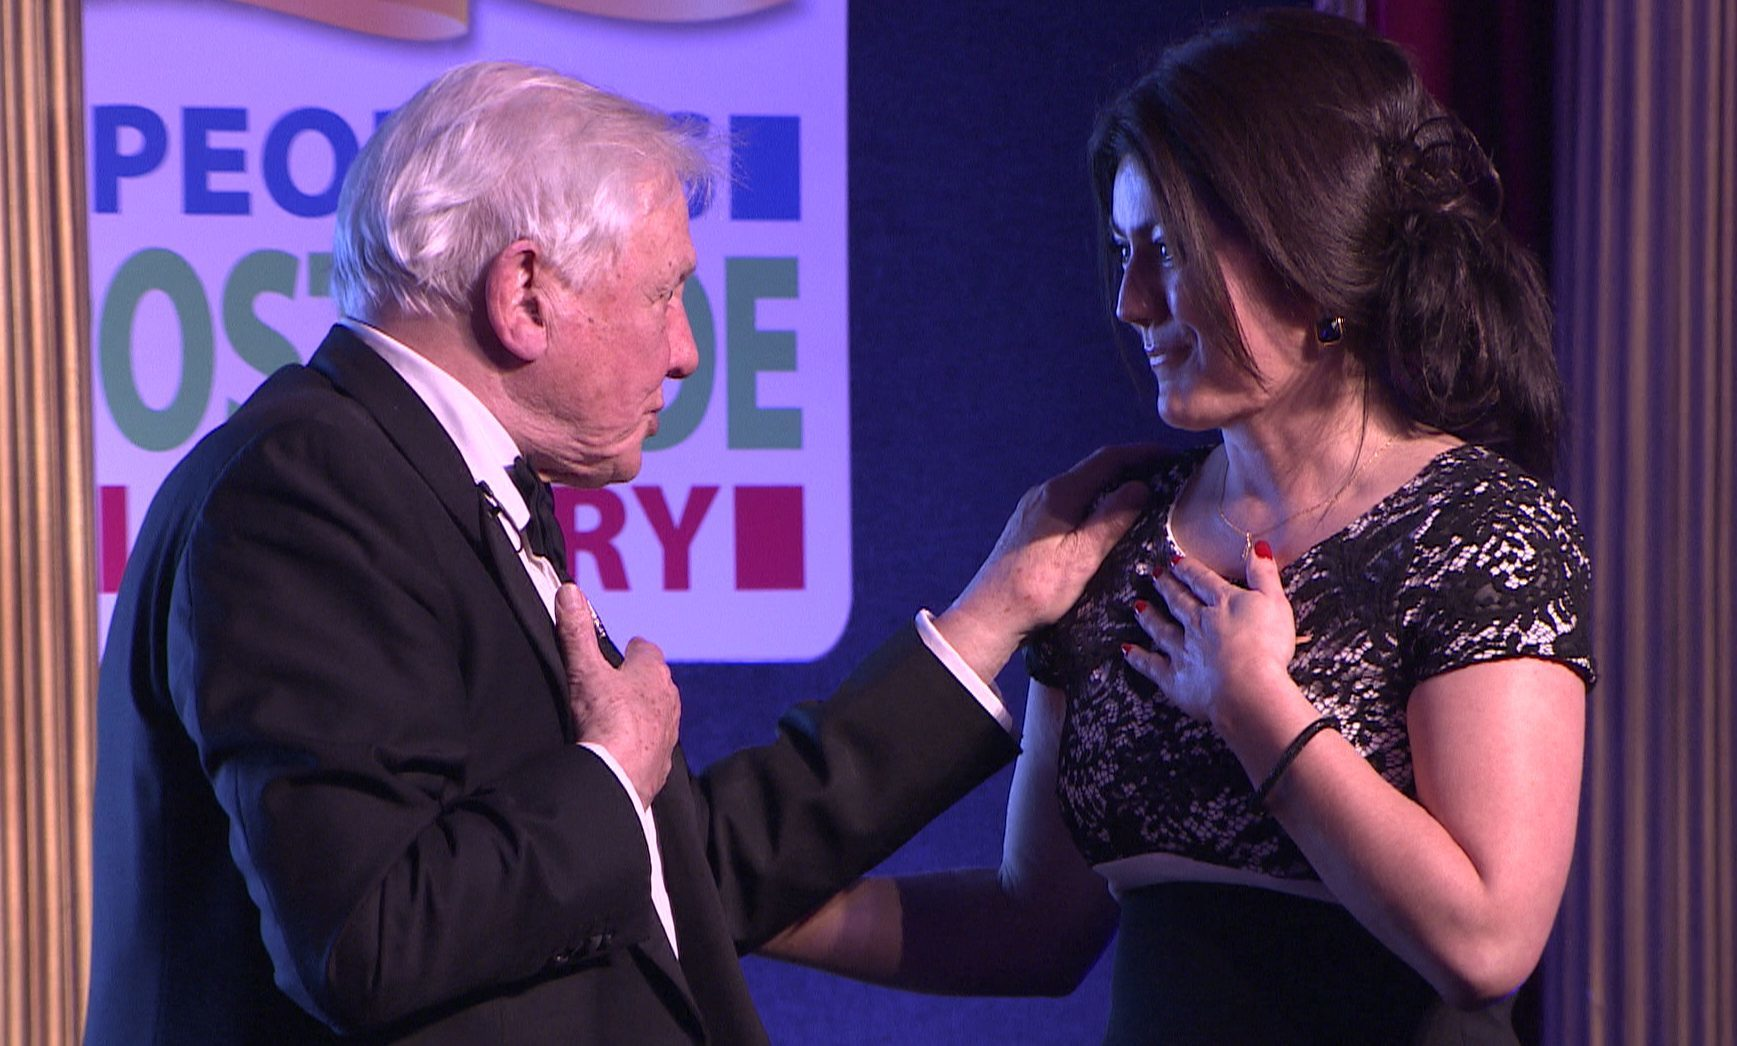 Julie Paterson is reunited with Sir David Attenborough, 35 years after his hot air balloon landed on her farm.